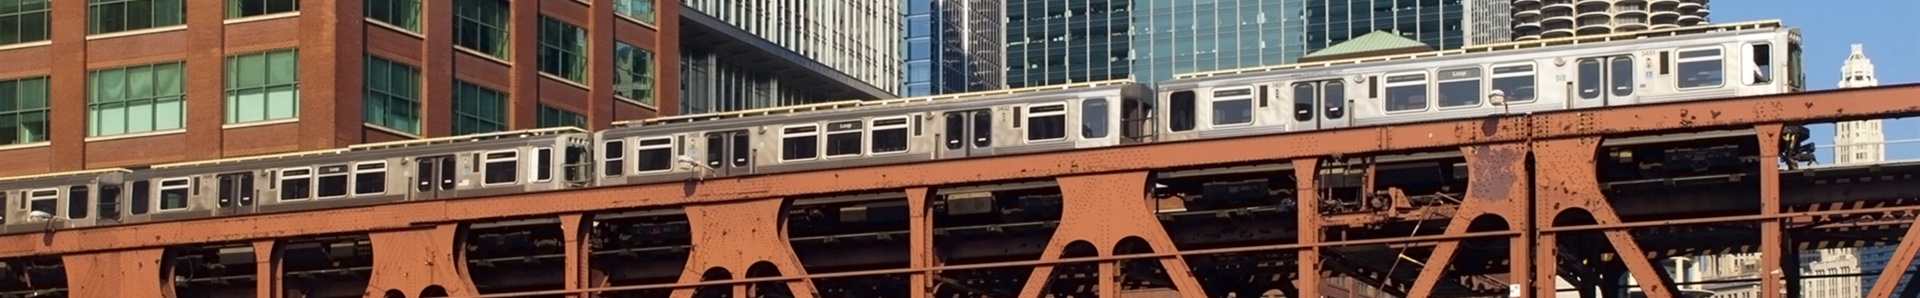 D16_The_Chicago_Elevated_Train